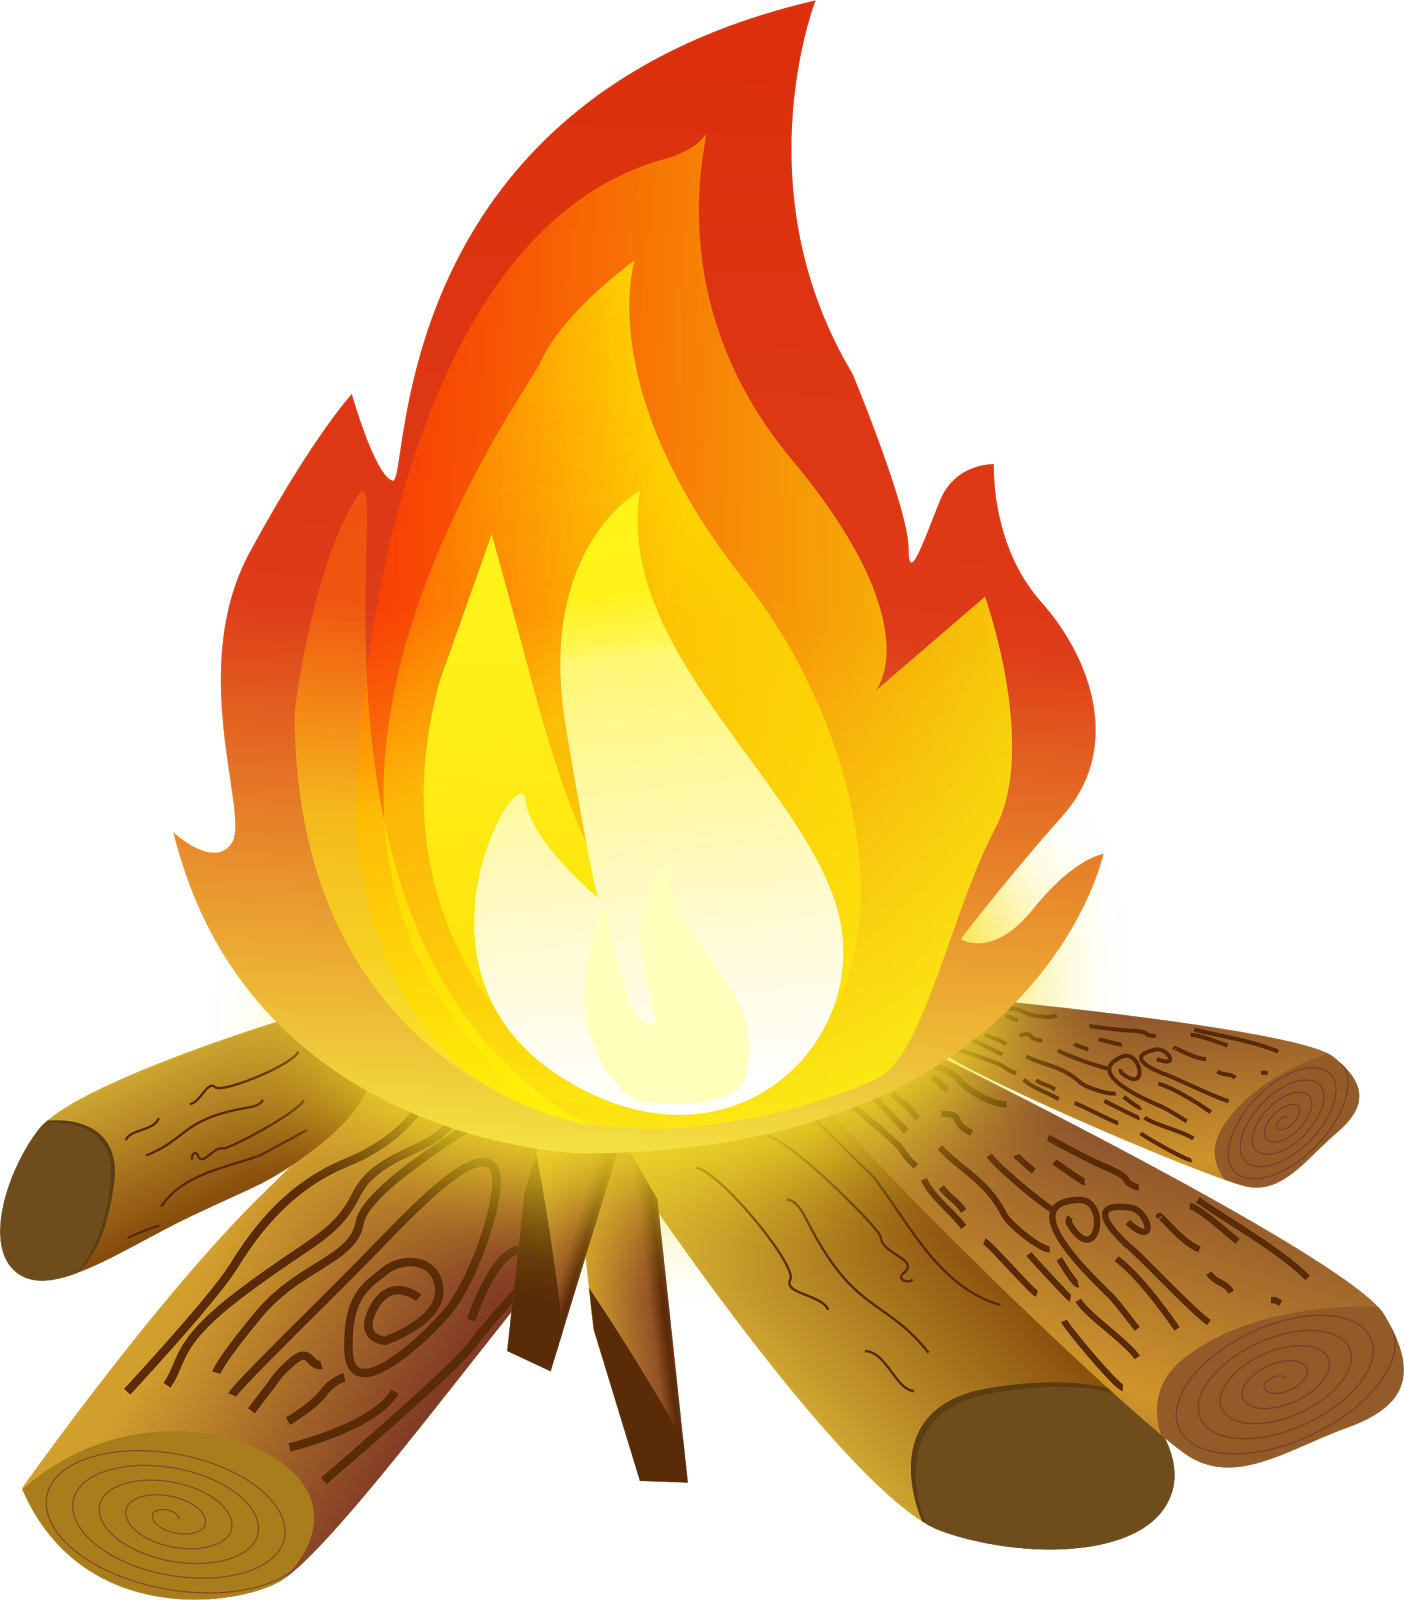 Blue bonfire clipart no background.